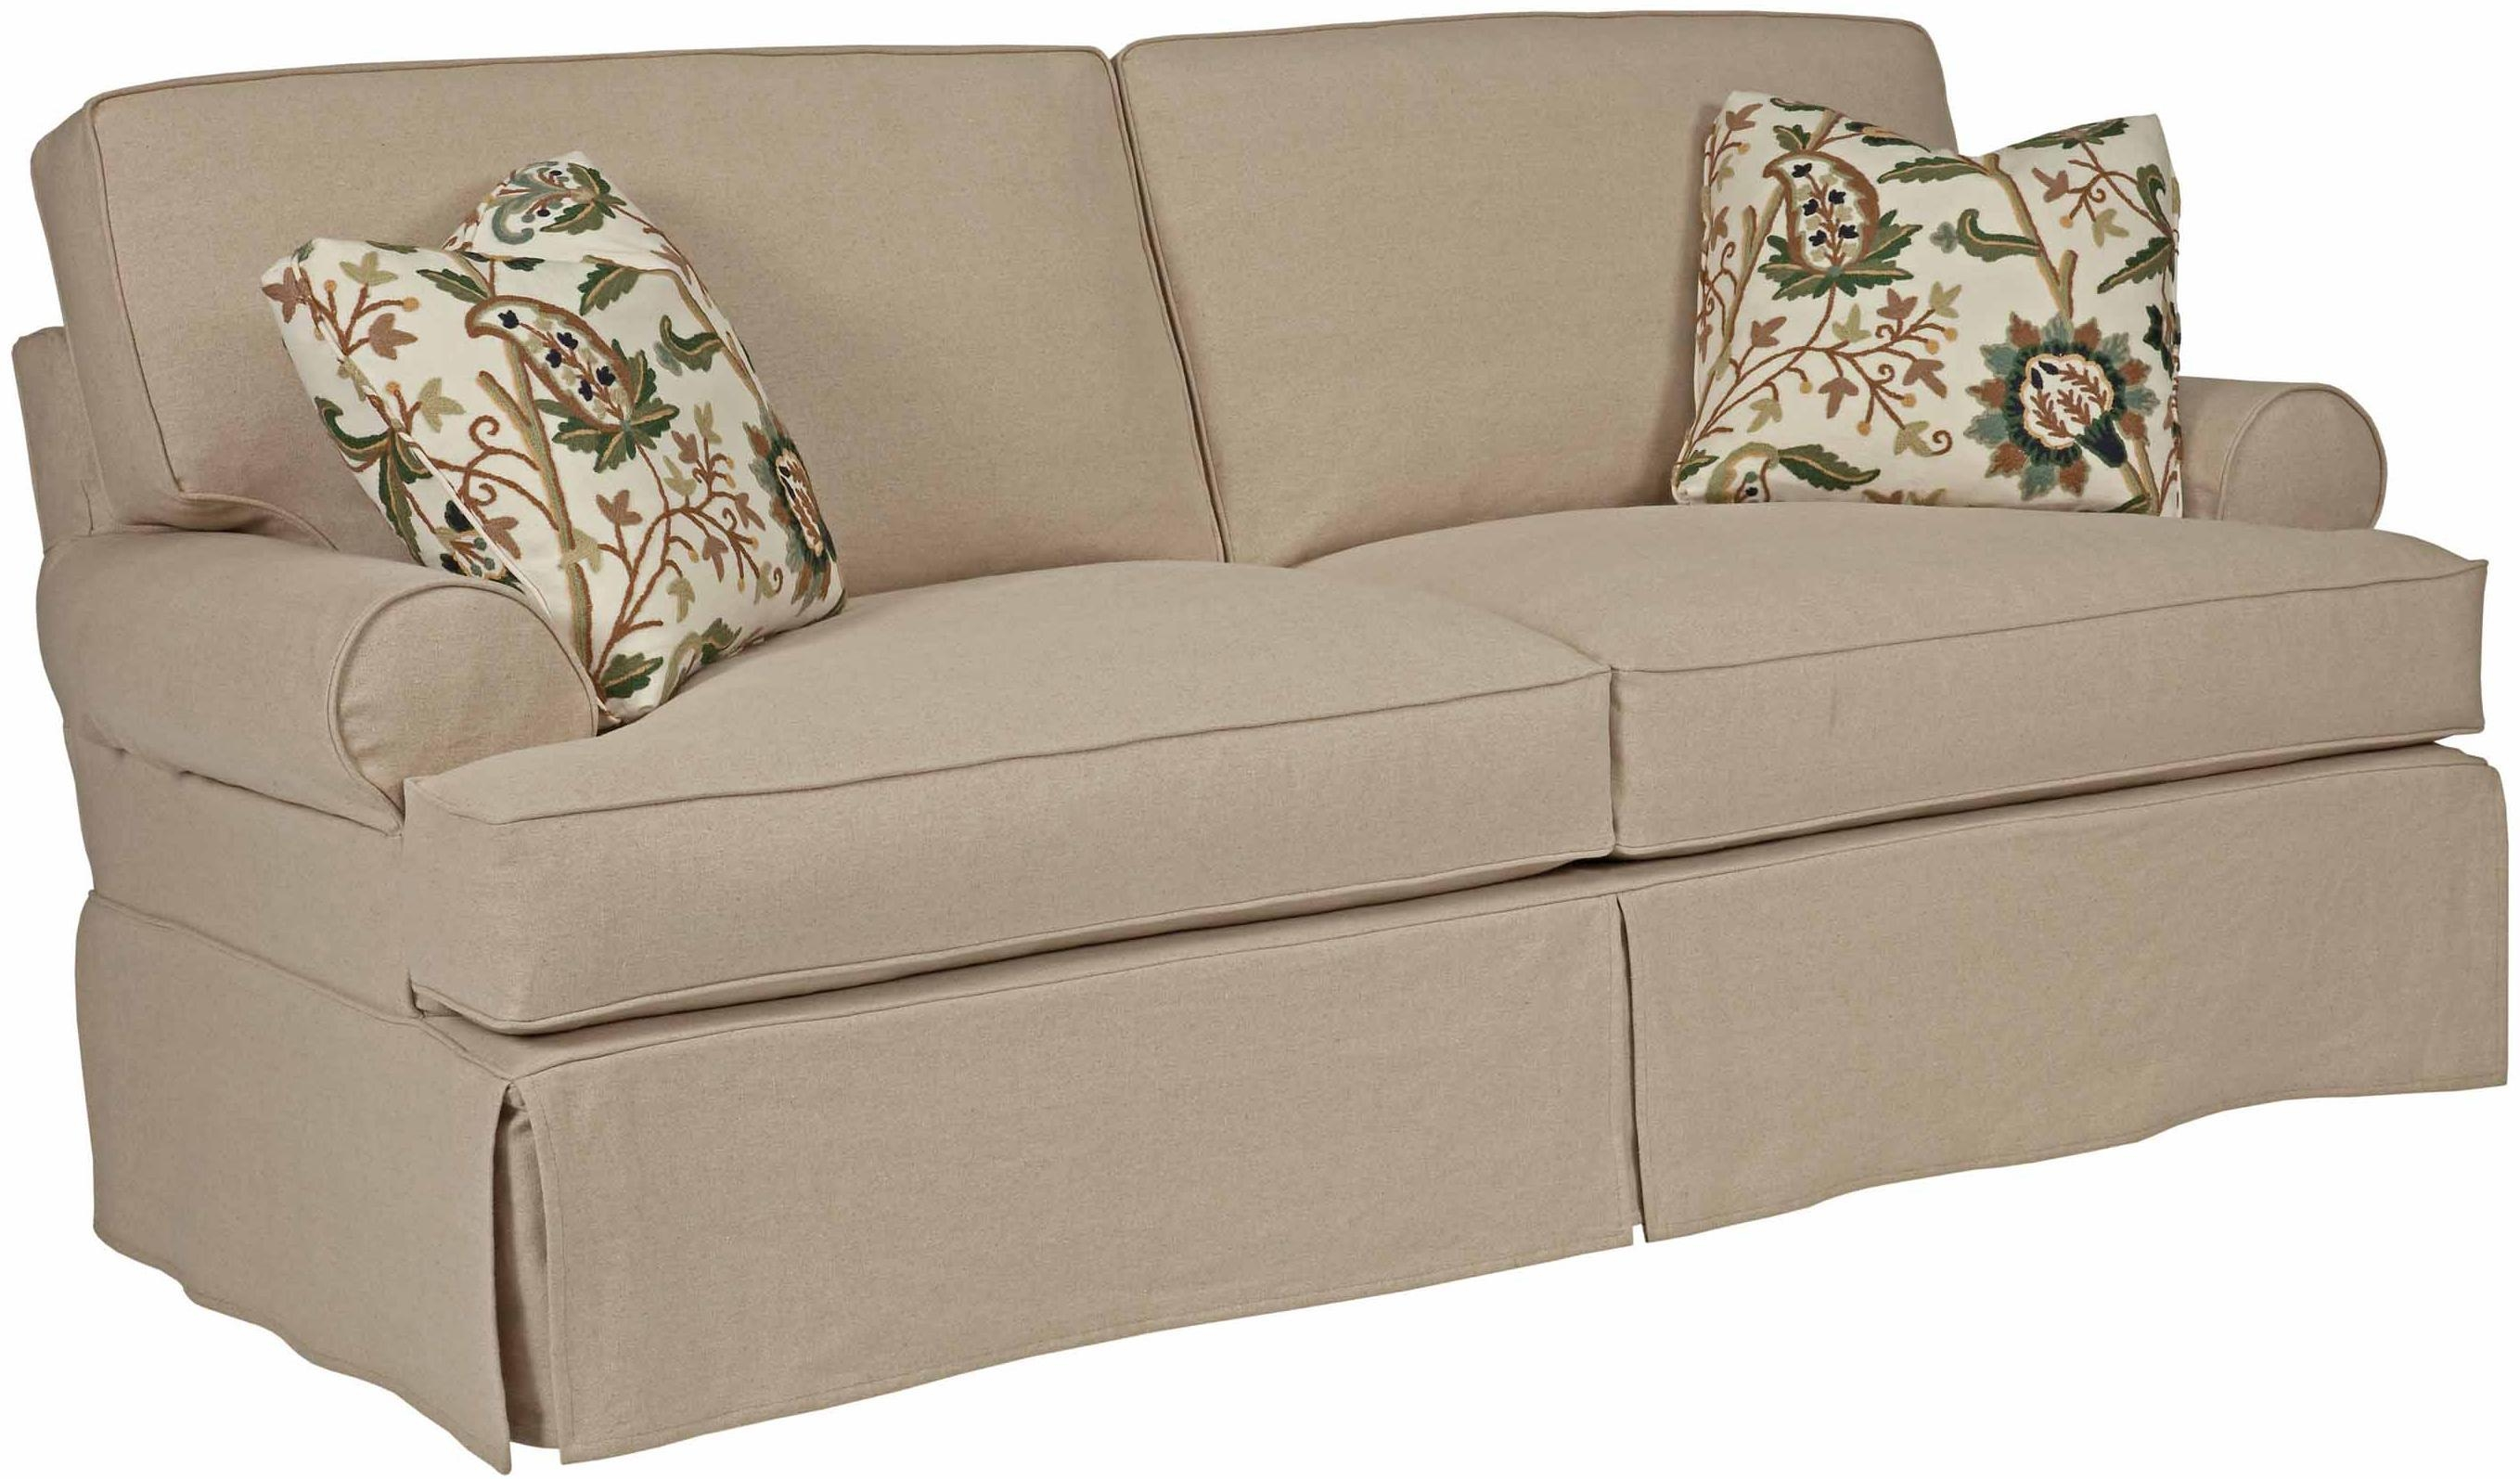 25 photos sofa loveseat slipcovers sofa ideas Loveseat cushion covers